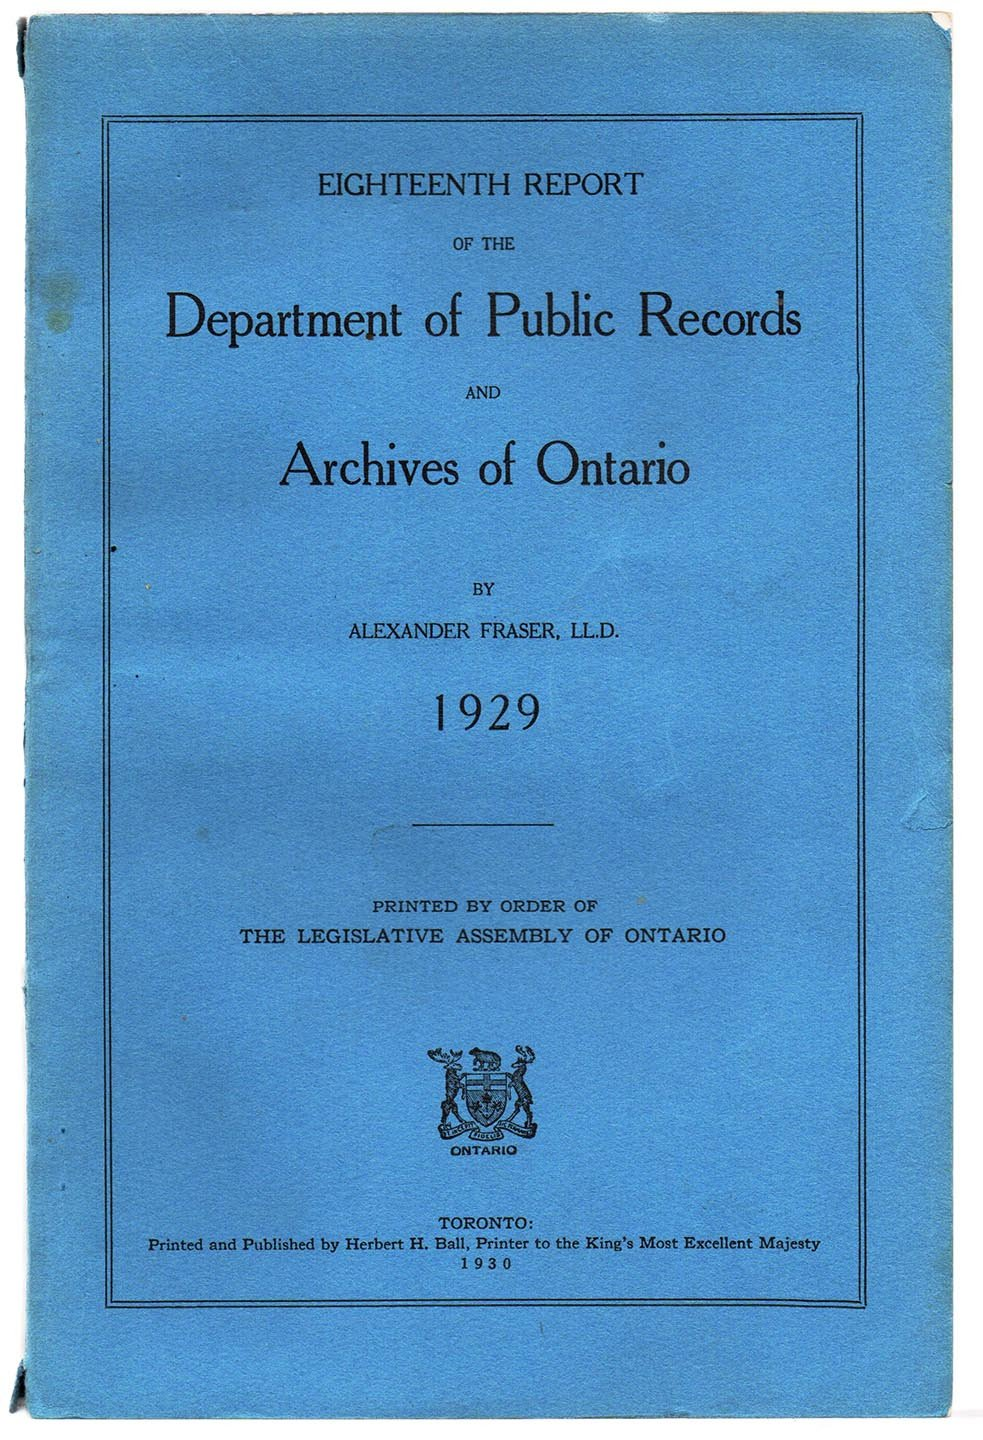 Eighteenth Report of the Department of Public Records and Archives of Ontario, 1929